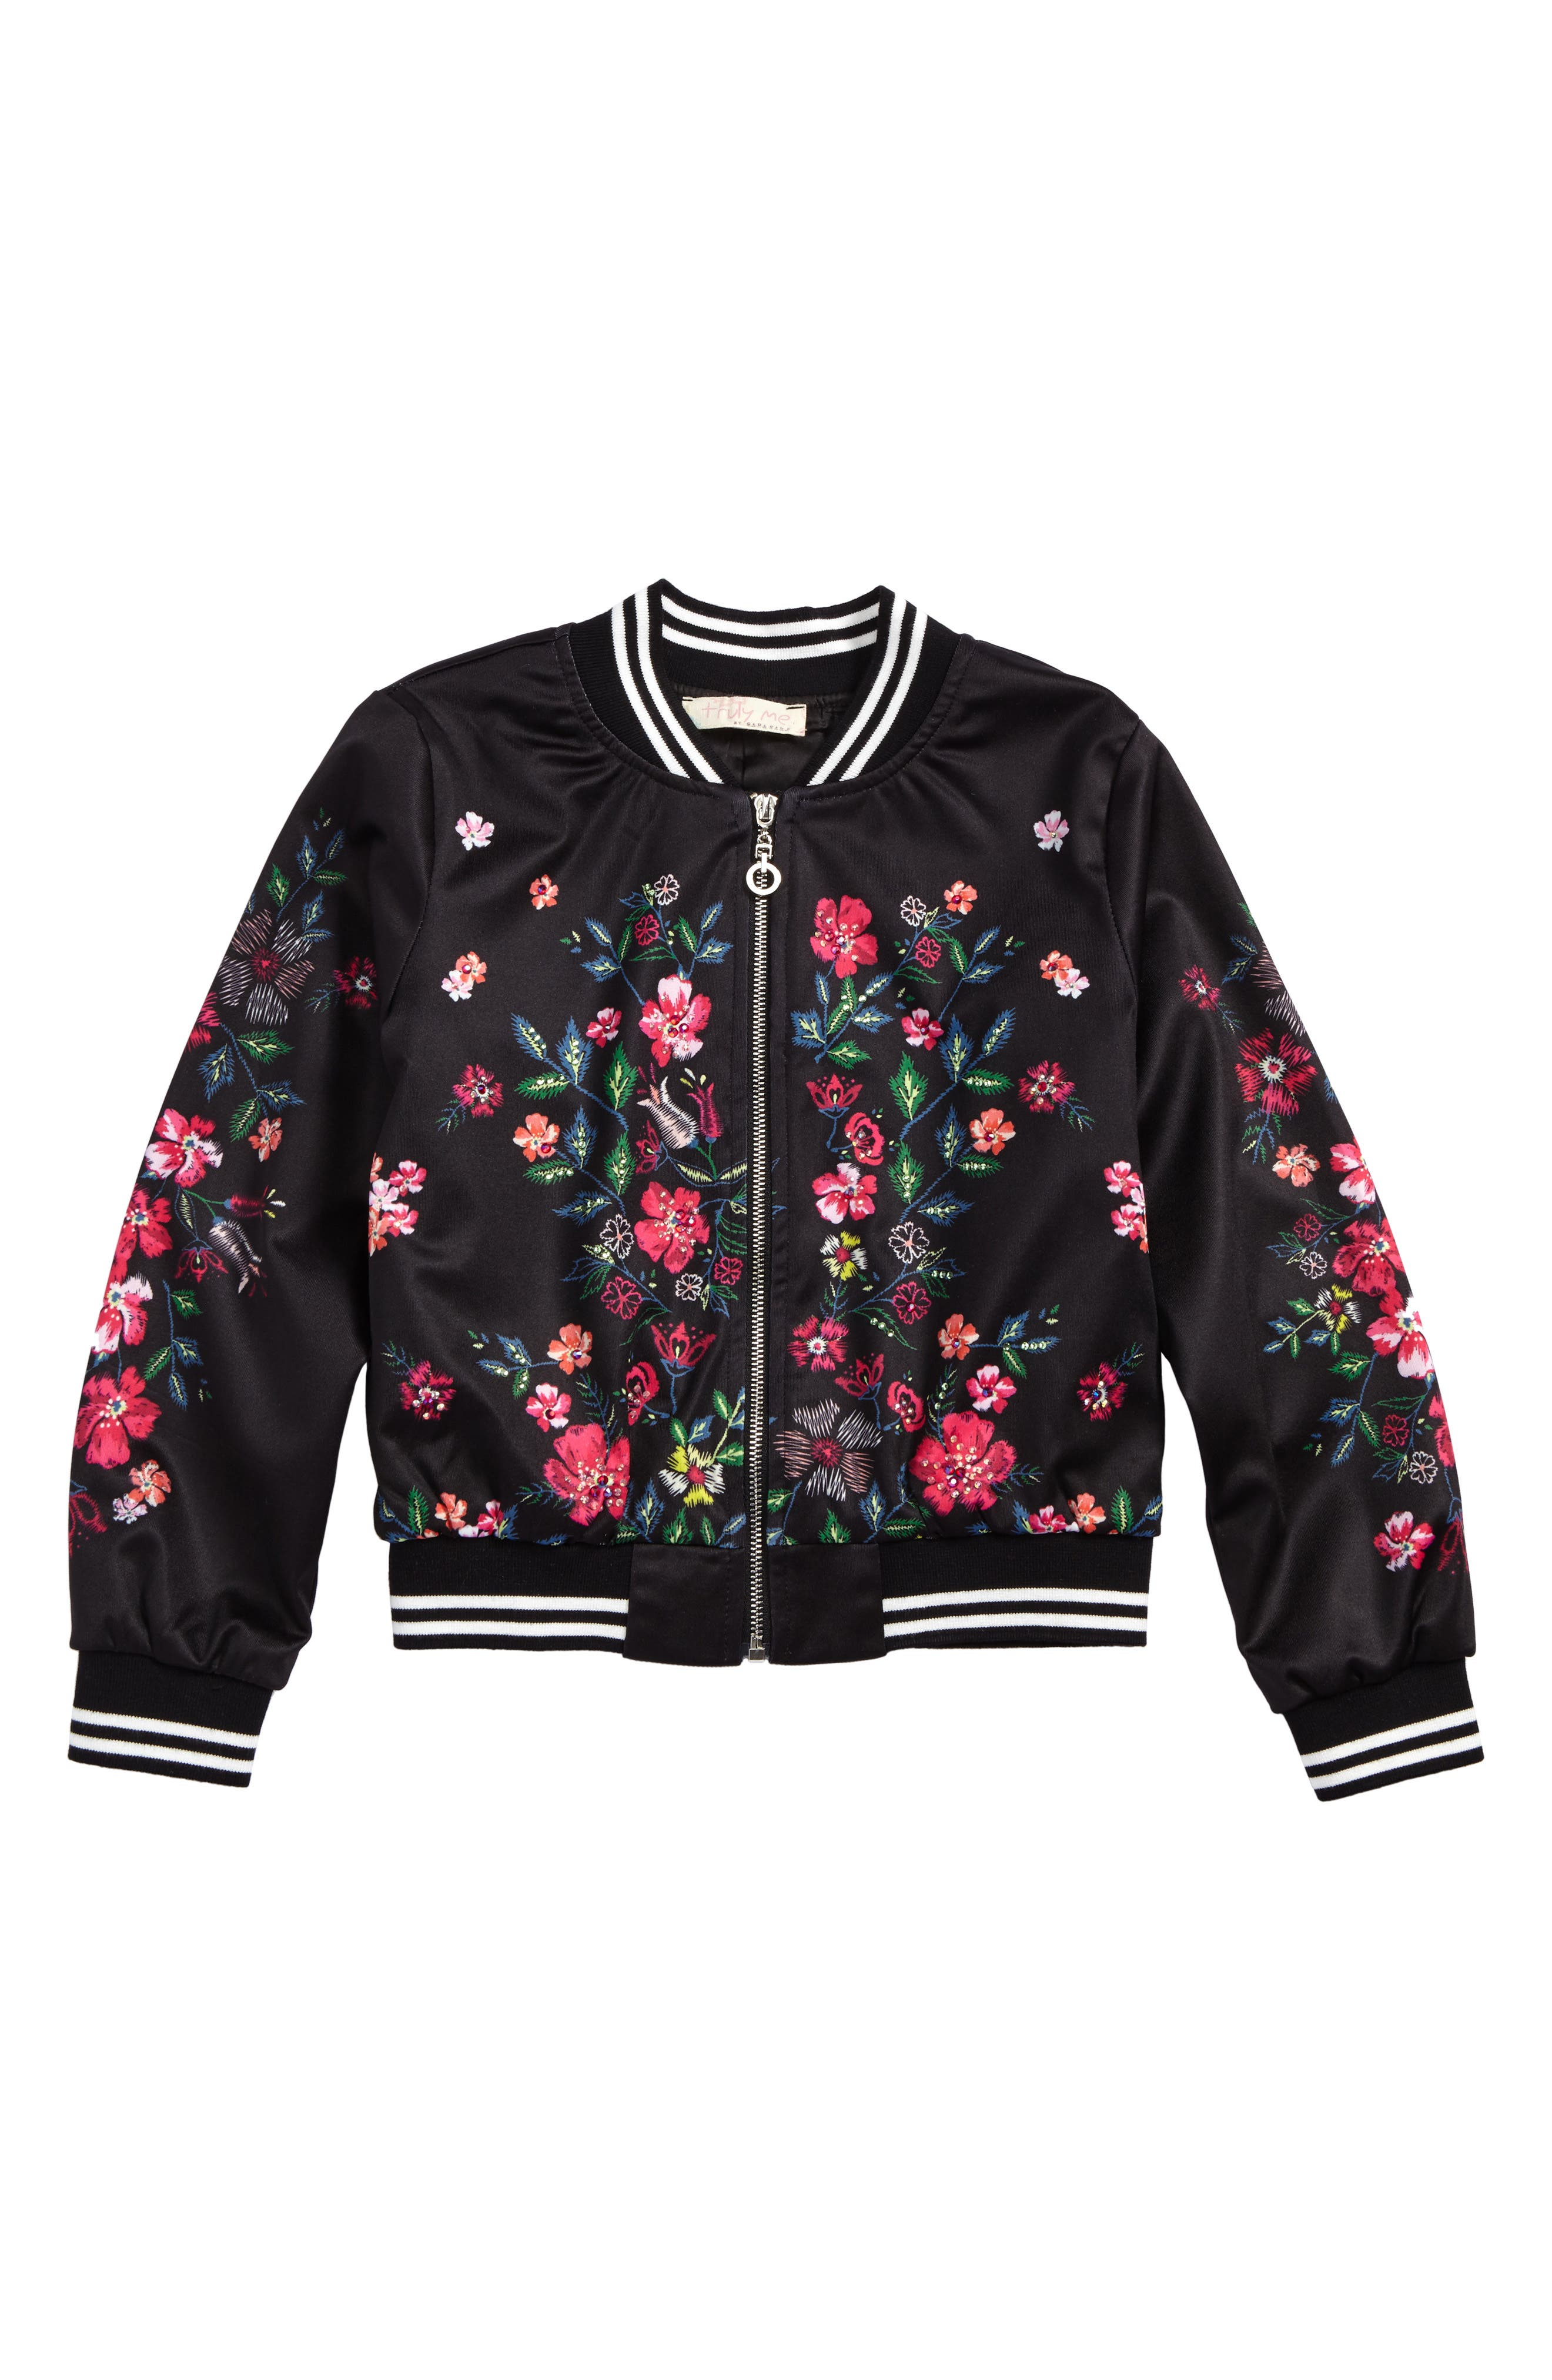 Main Image - Truly Me Floral Print Bomber Jacket (Toddler Girls & Little Girls)